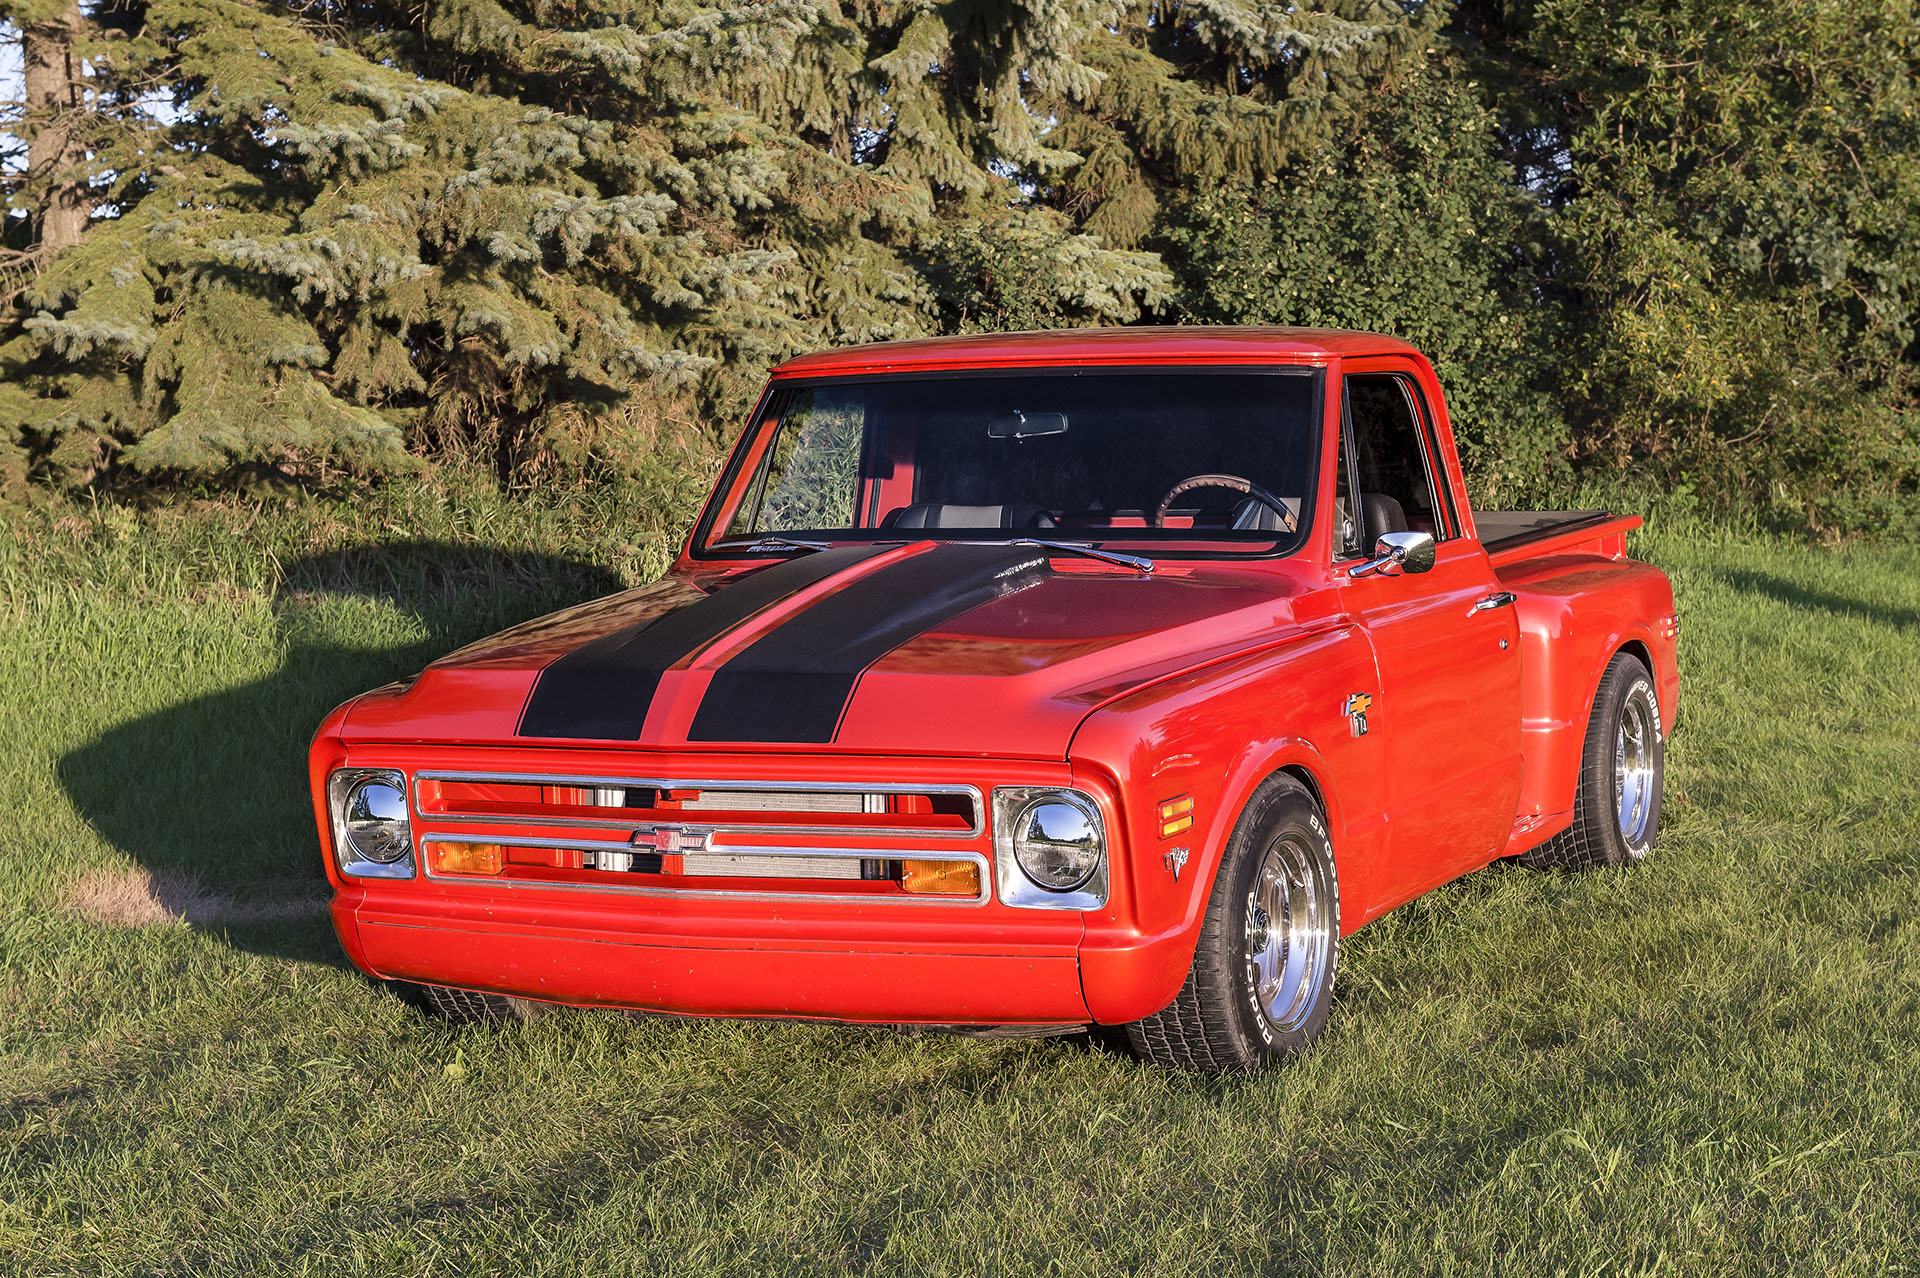 1968 Chevy C10 Short Box Step Side    Engine is a ZZ502 with an override Transmission. Full air bag suspension with Bluetooth control. Dakota digital gauges. American custom low back seatsThis truck is locally owned and you will see it at Just Kruzin Kruzin Kruz nights.